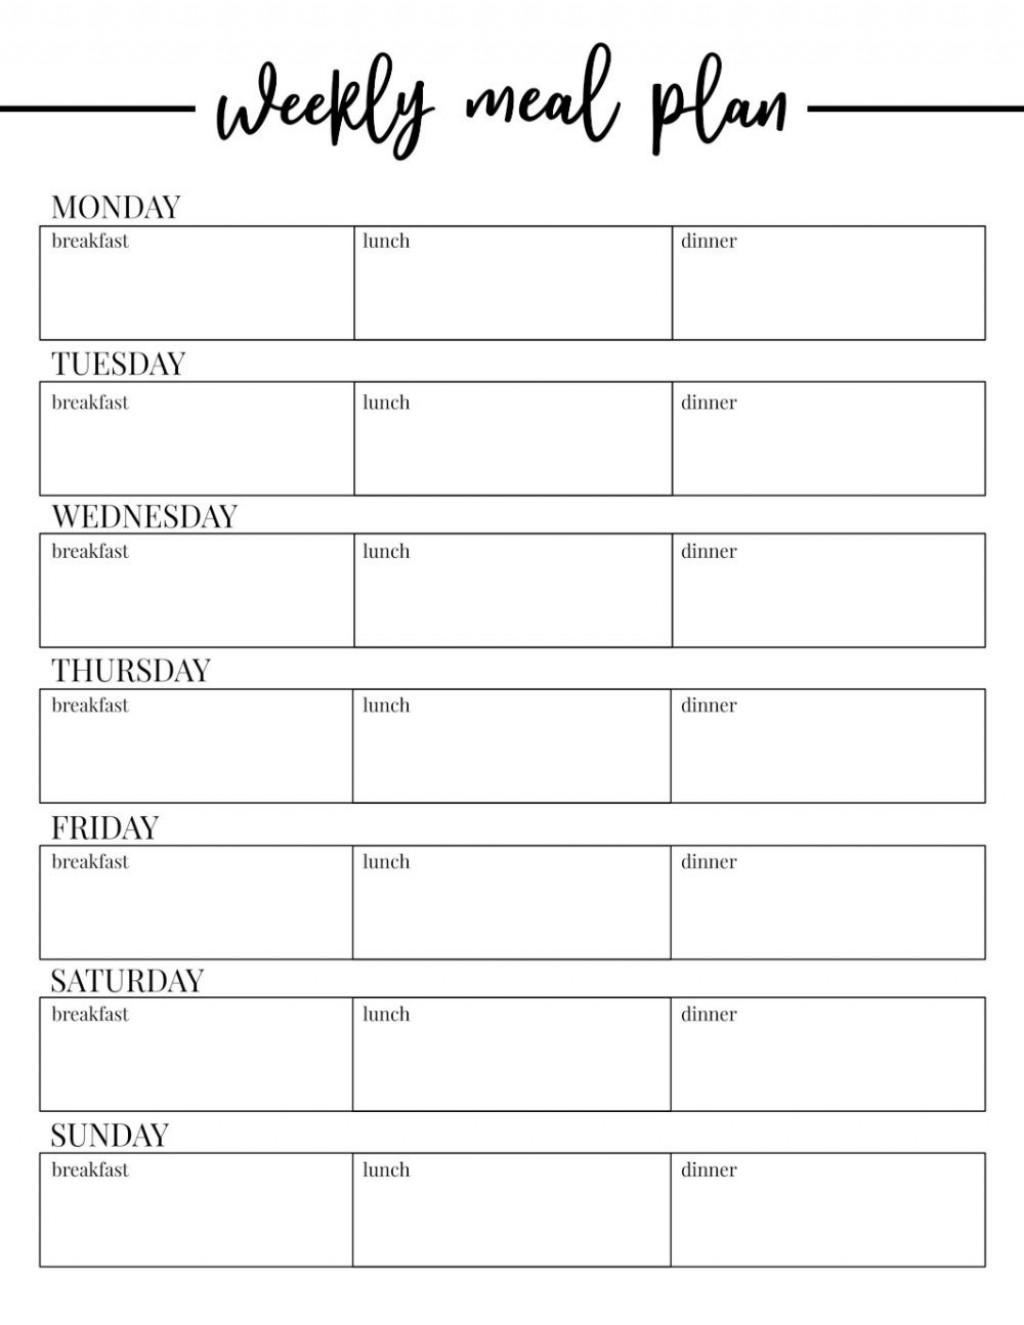 003 Breathtaking Meal Plan Calendar Template High Resolution  Excel Weekly 30 DayLarge